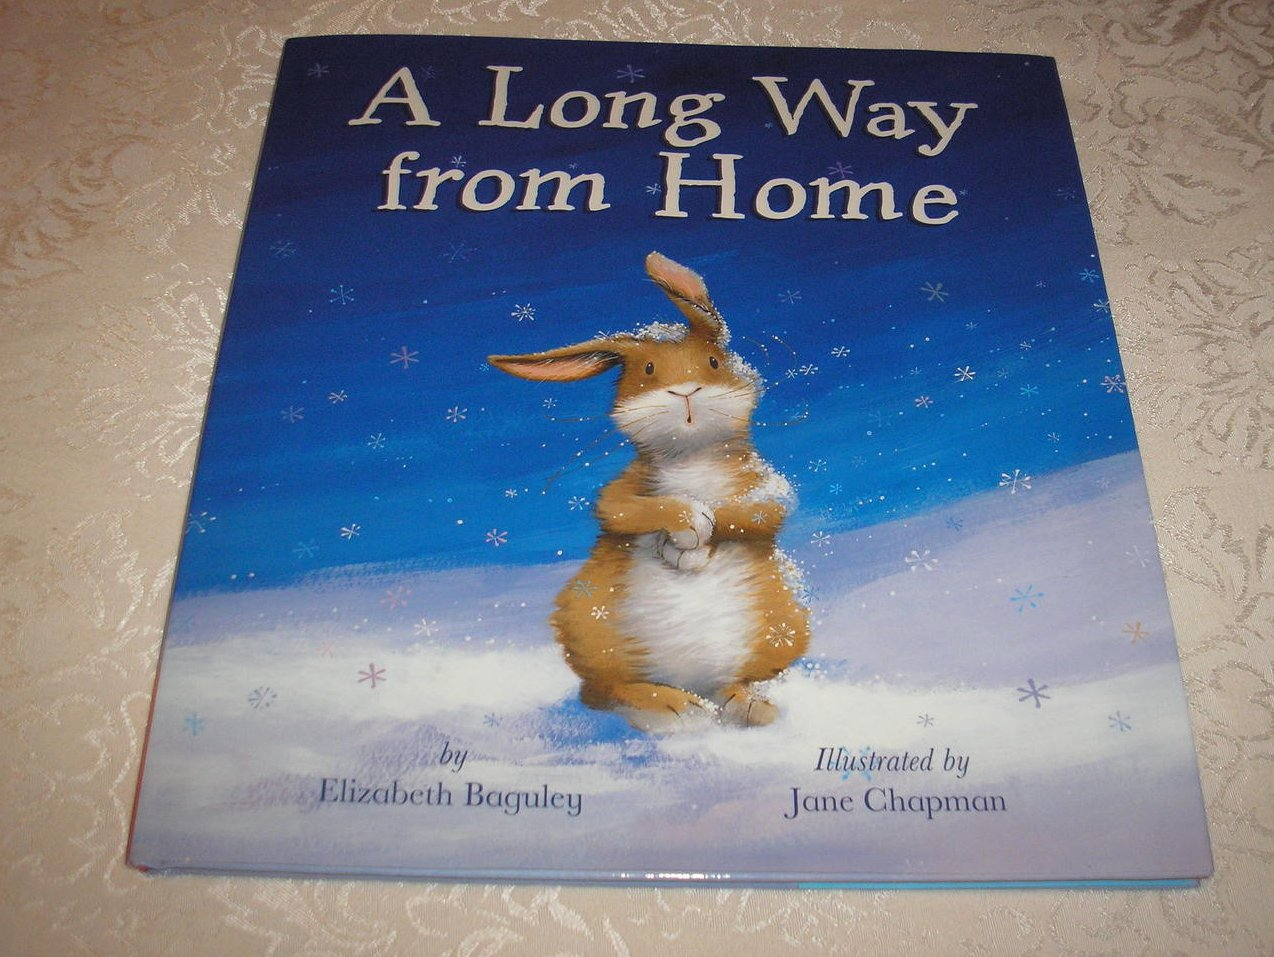 A Long Way From Home  Elizabeth Baguley Brand New HC with Dust Jacket